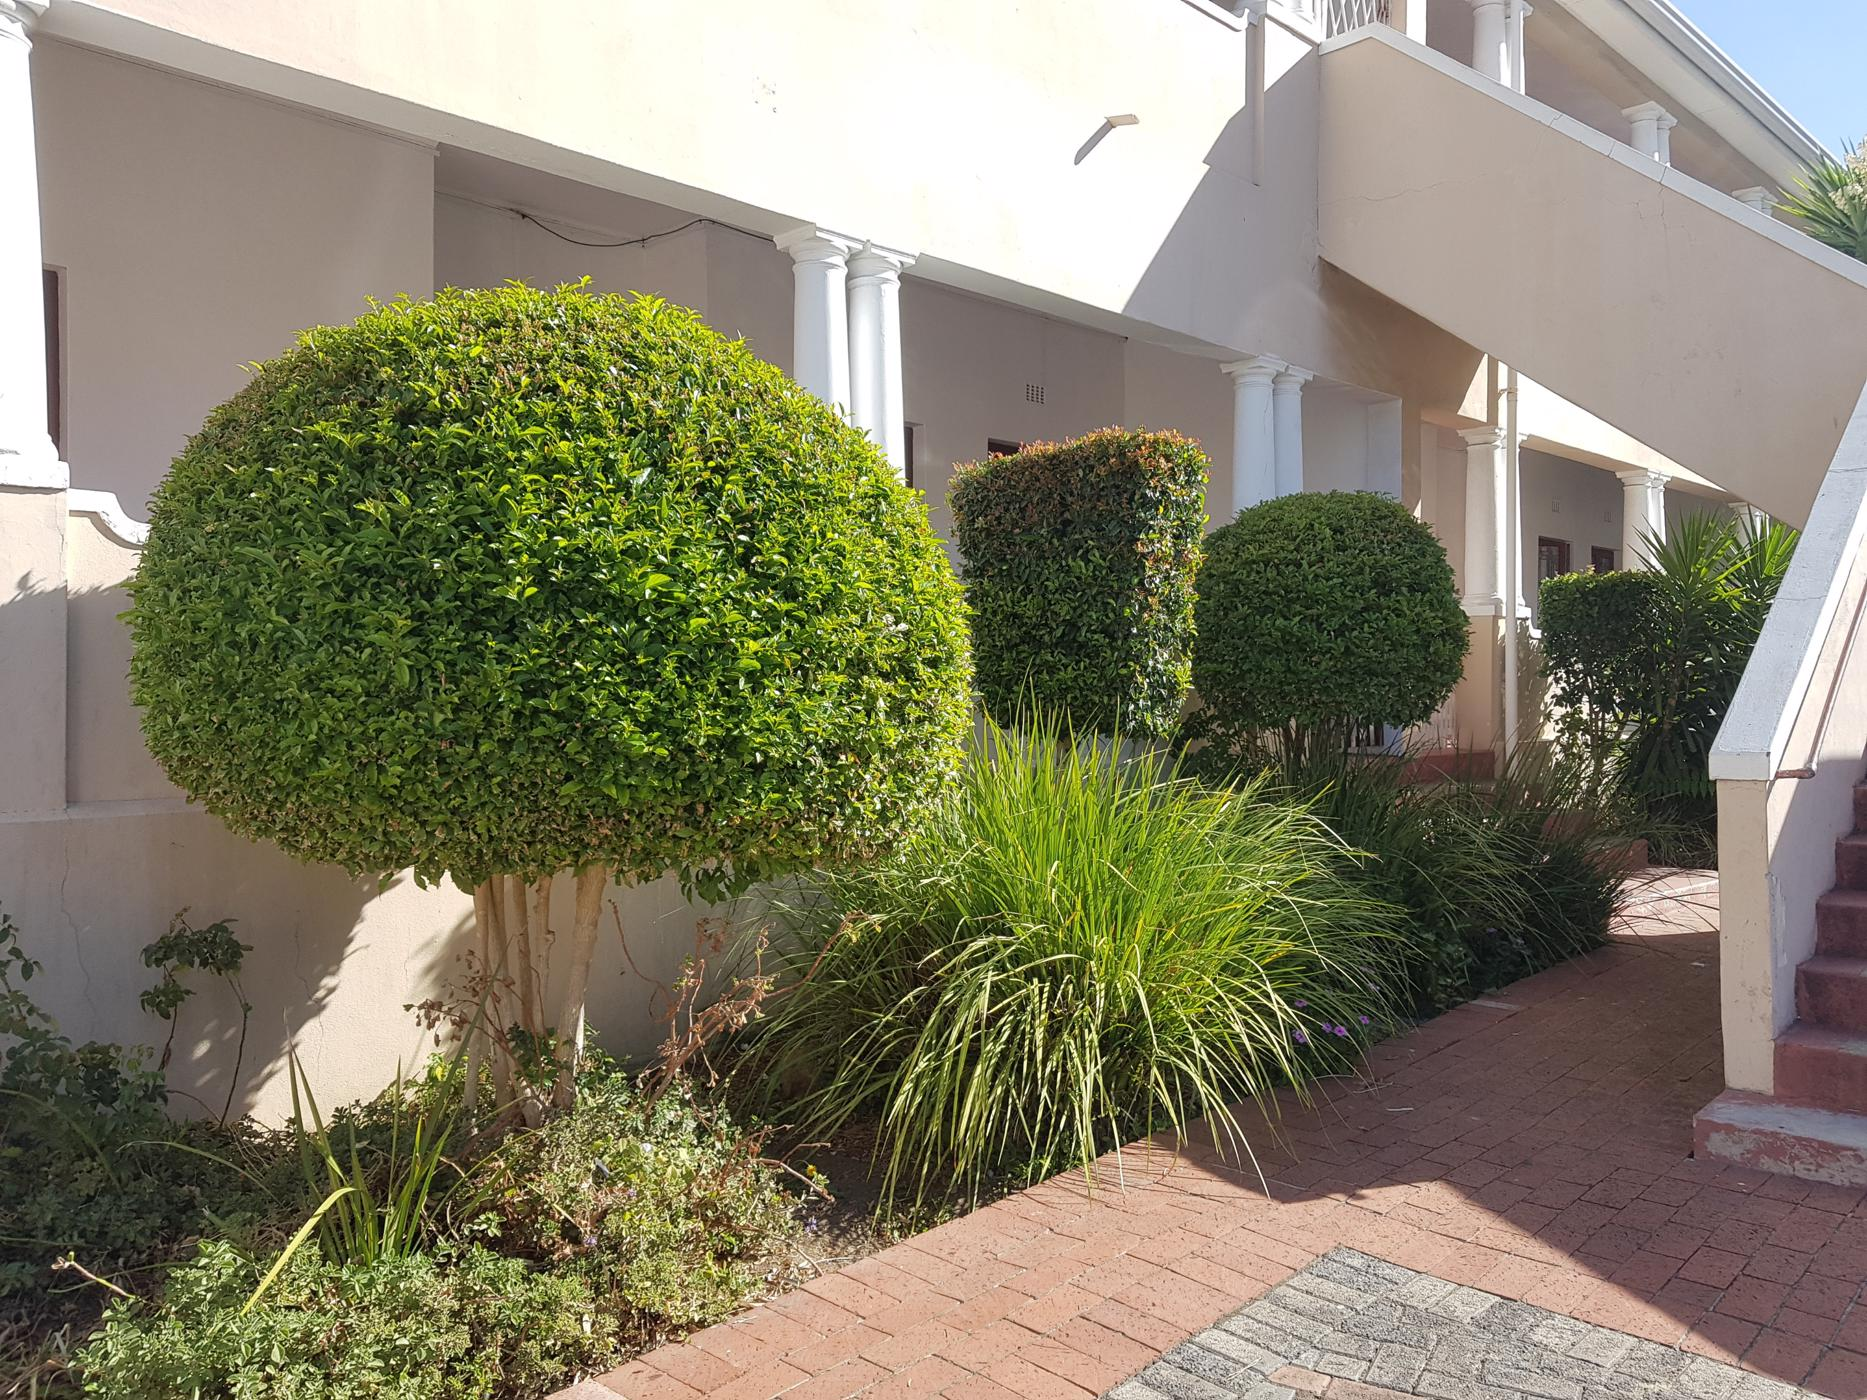 https://listing.pamgolding.co.za/images/properties/201904/1287216/H/1287216_H_13.jpg